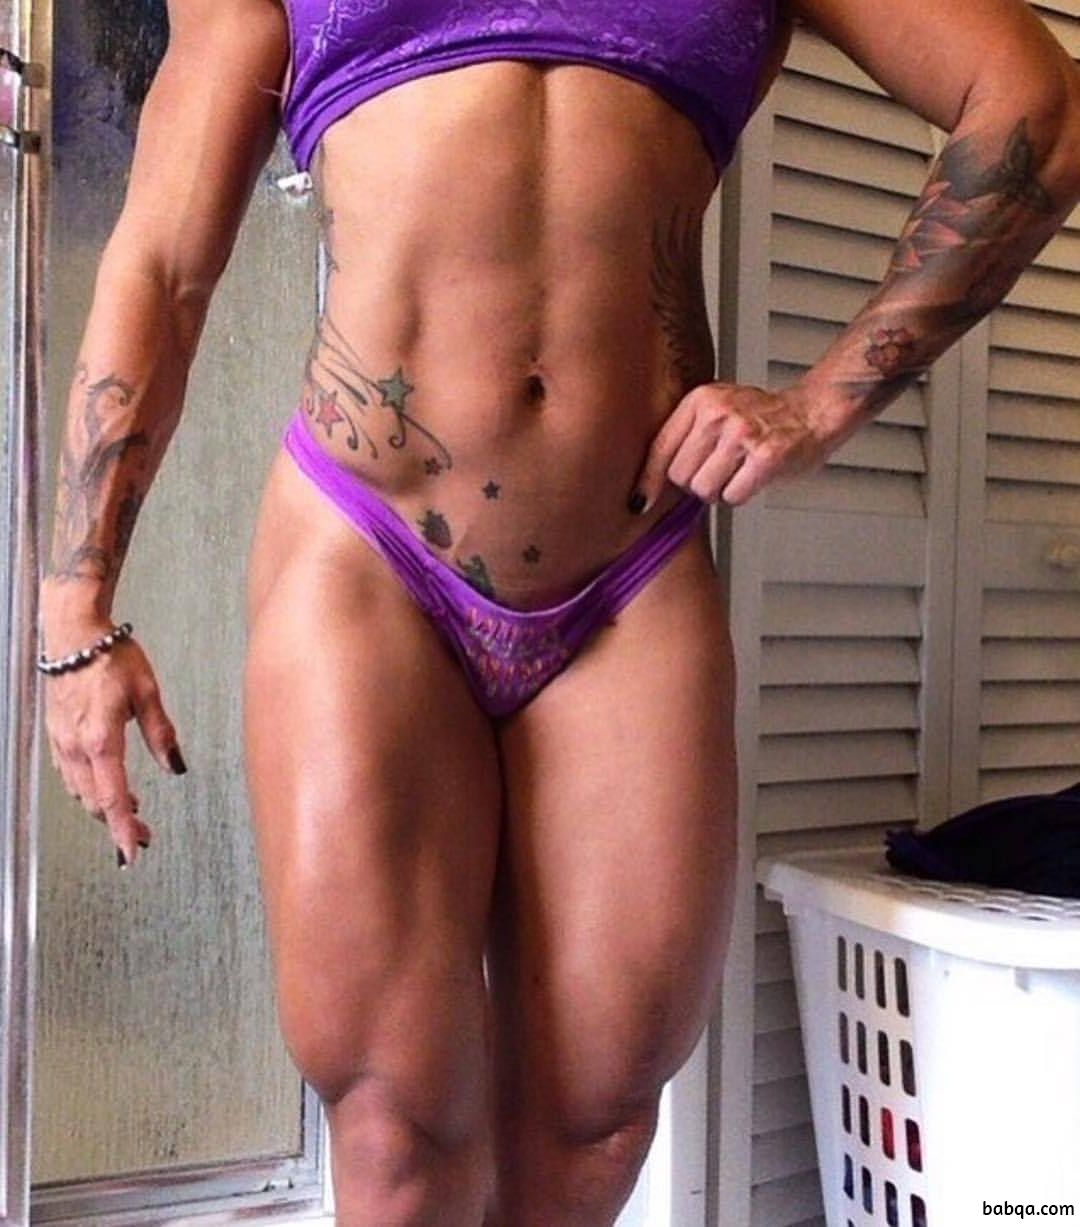 cute woman with strong body and muscle arms picture from facebook